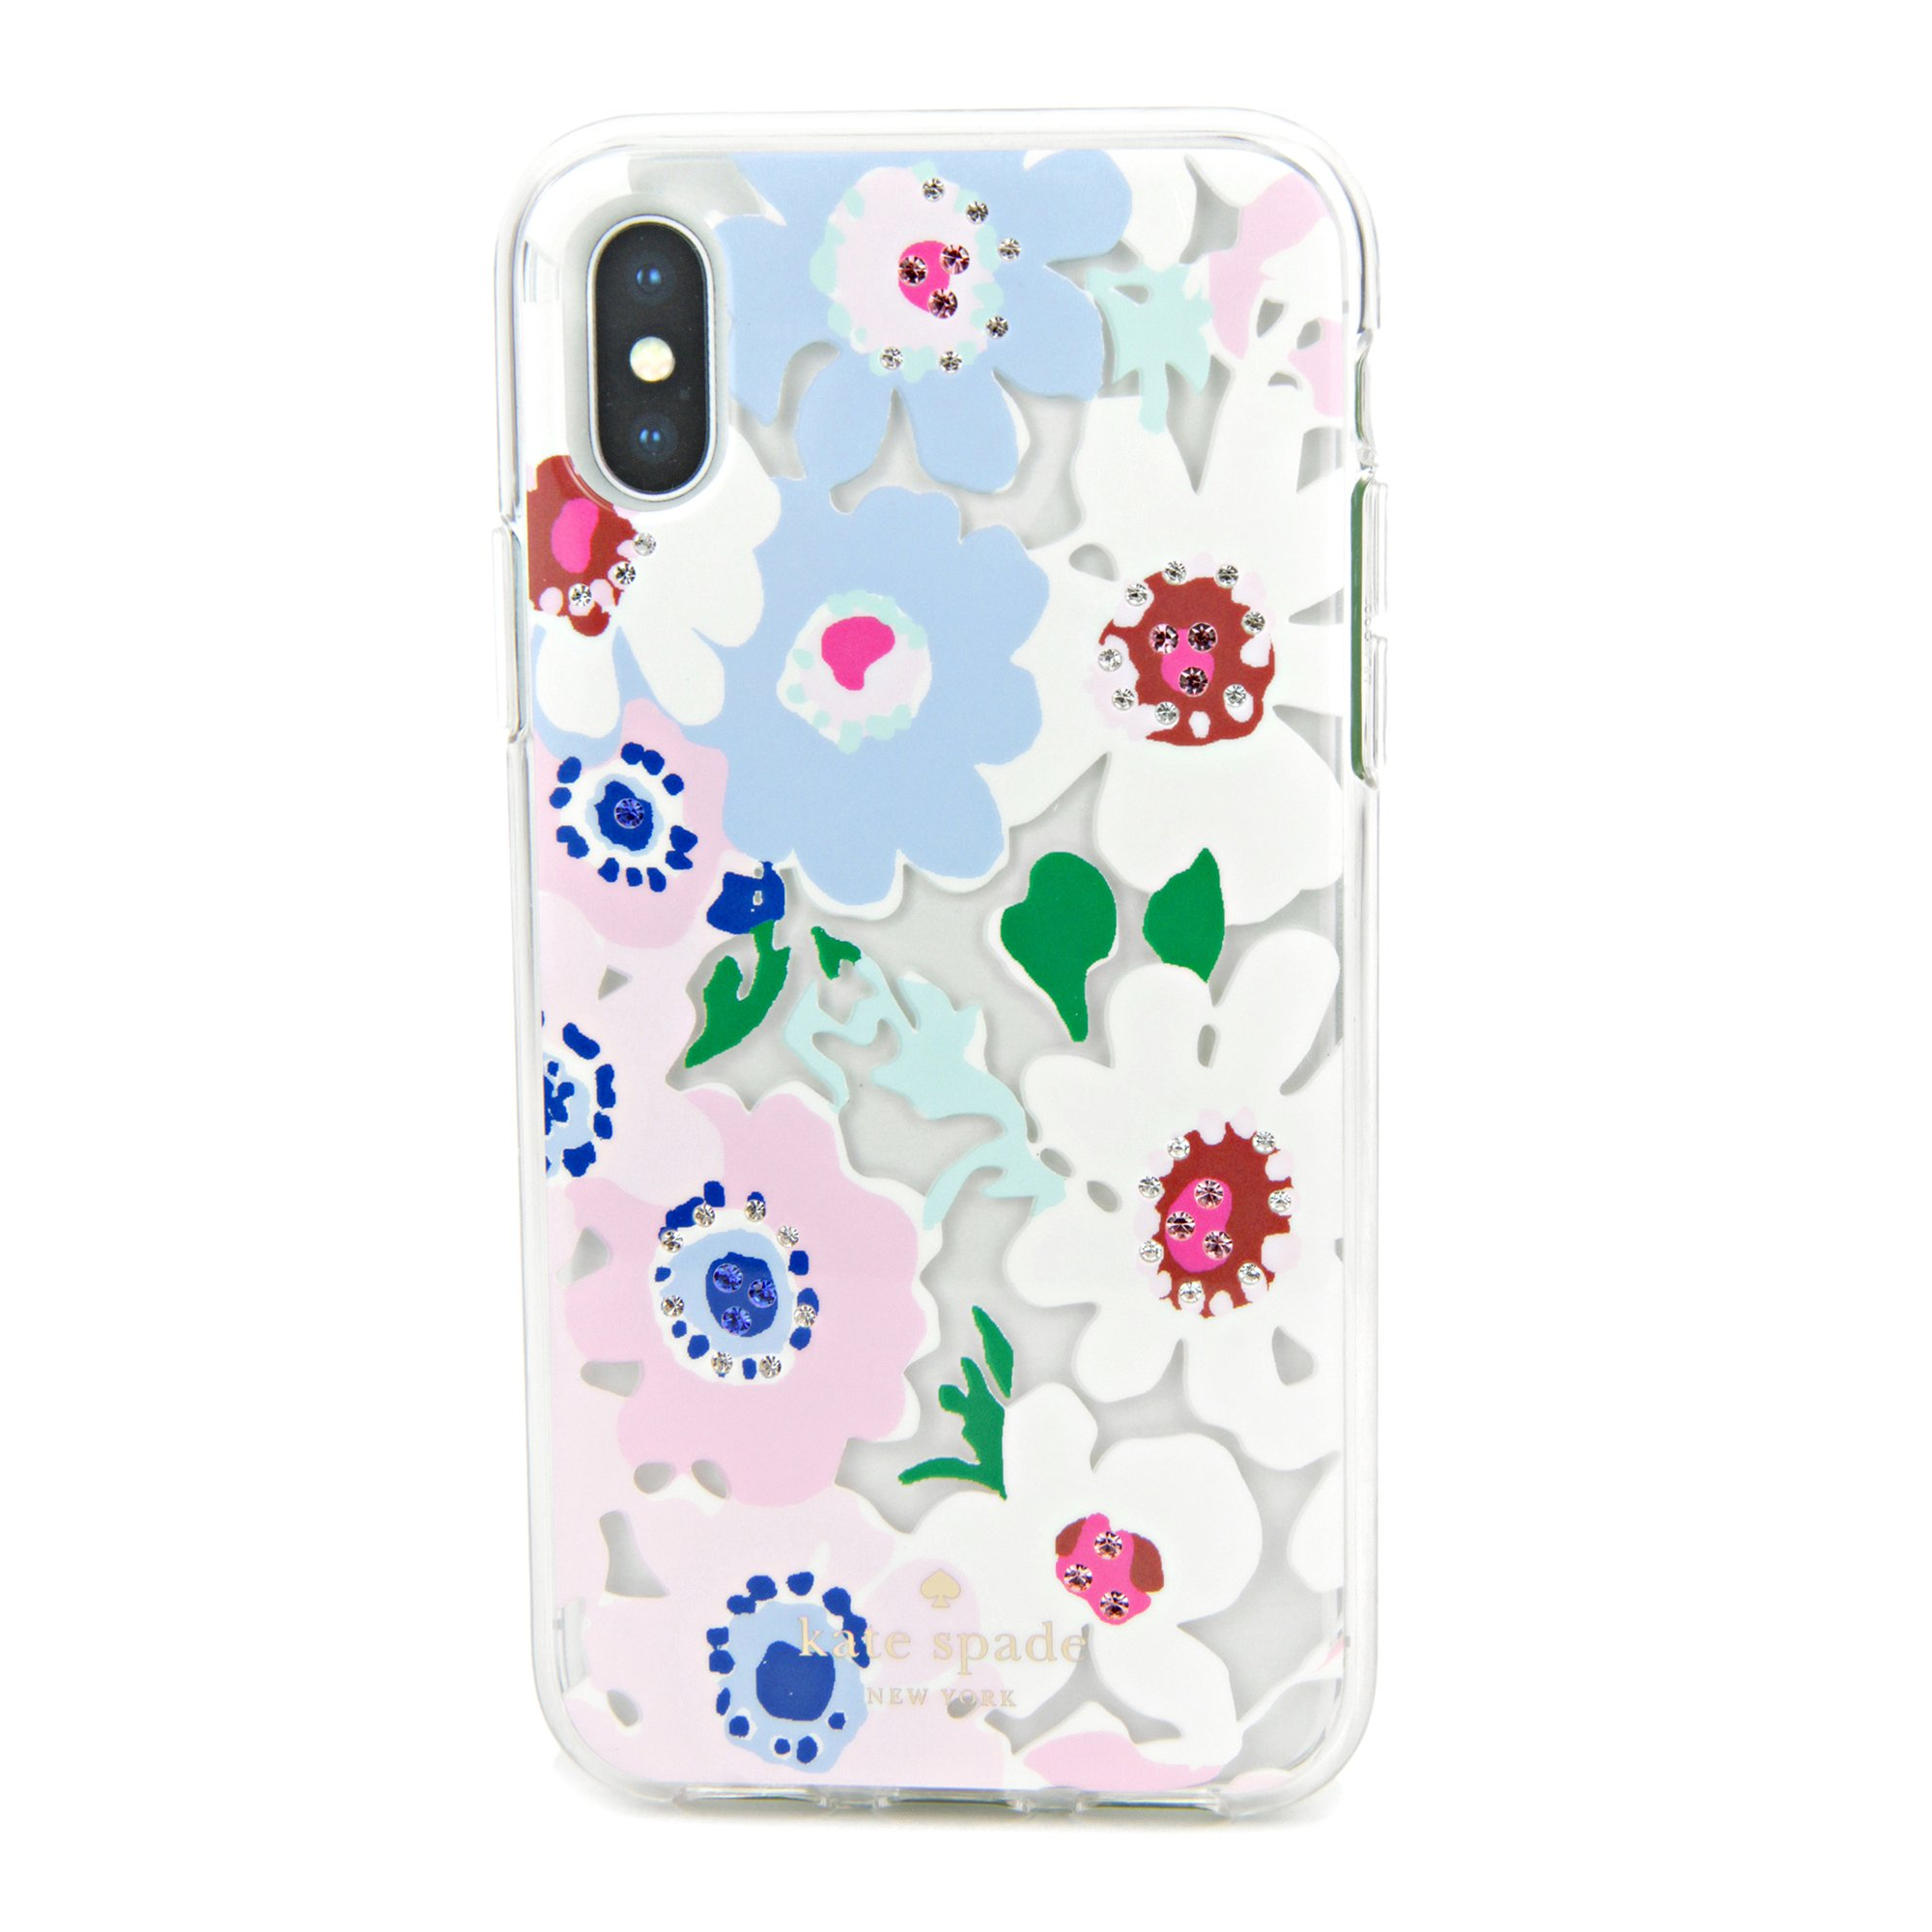 Kate Spade New York Women's Jeweled Daisy Garden Clear Phone Case for iPhone X Clear Multi One Size